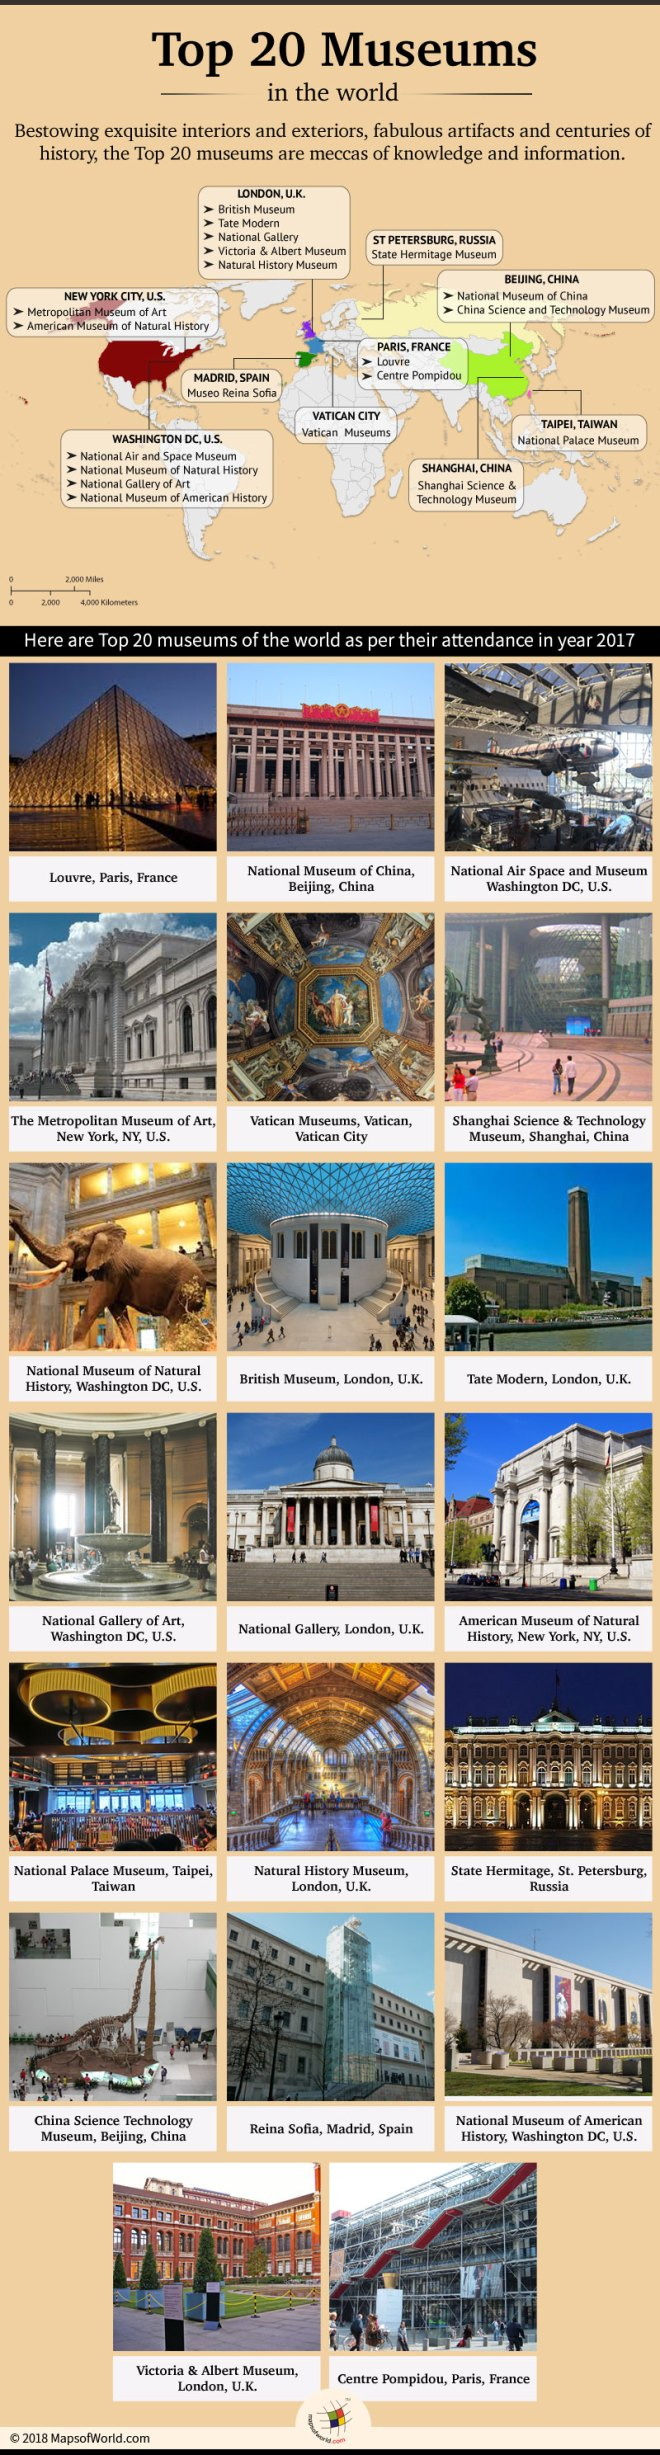 World's Top 20 Museums